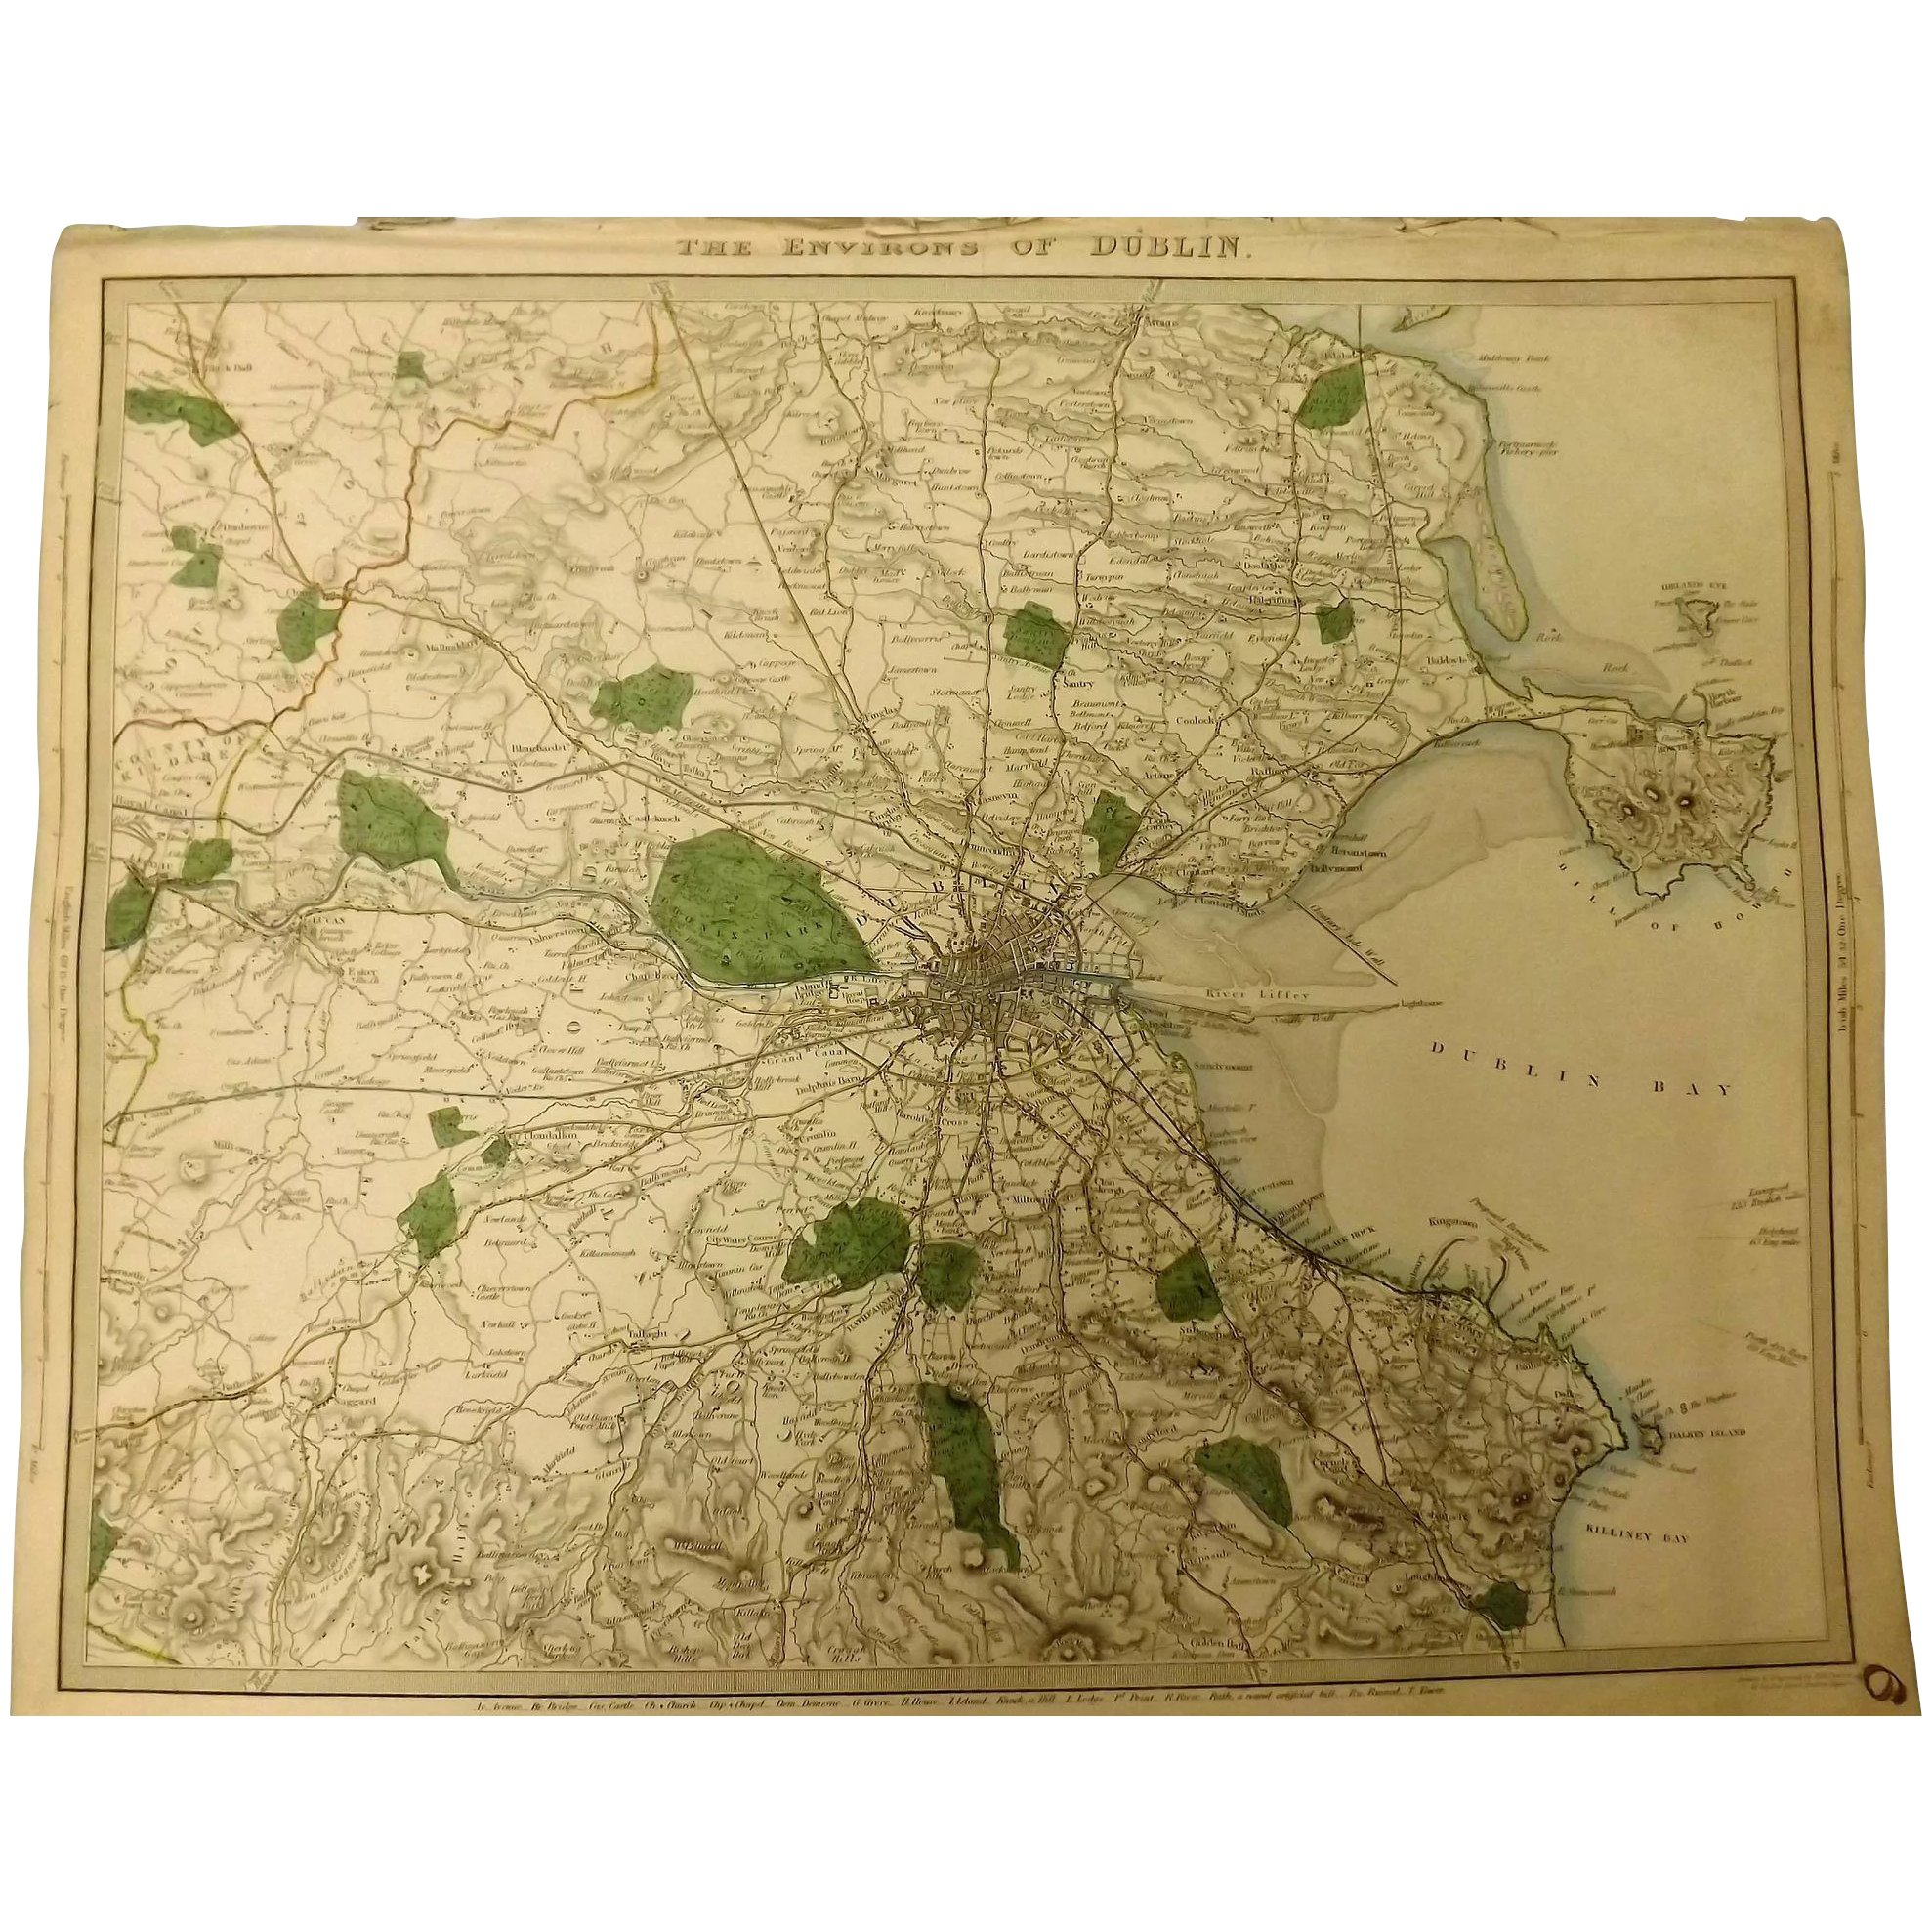 An Original Atlas Map of The Environs of DUBLIN Circa 1837 Published By